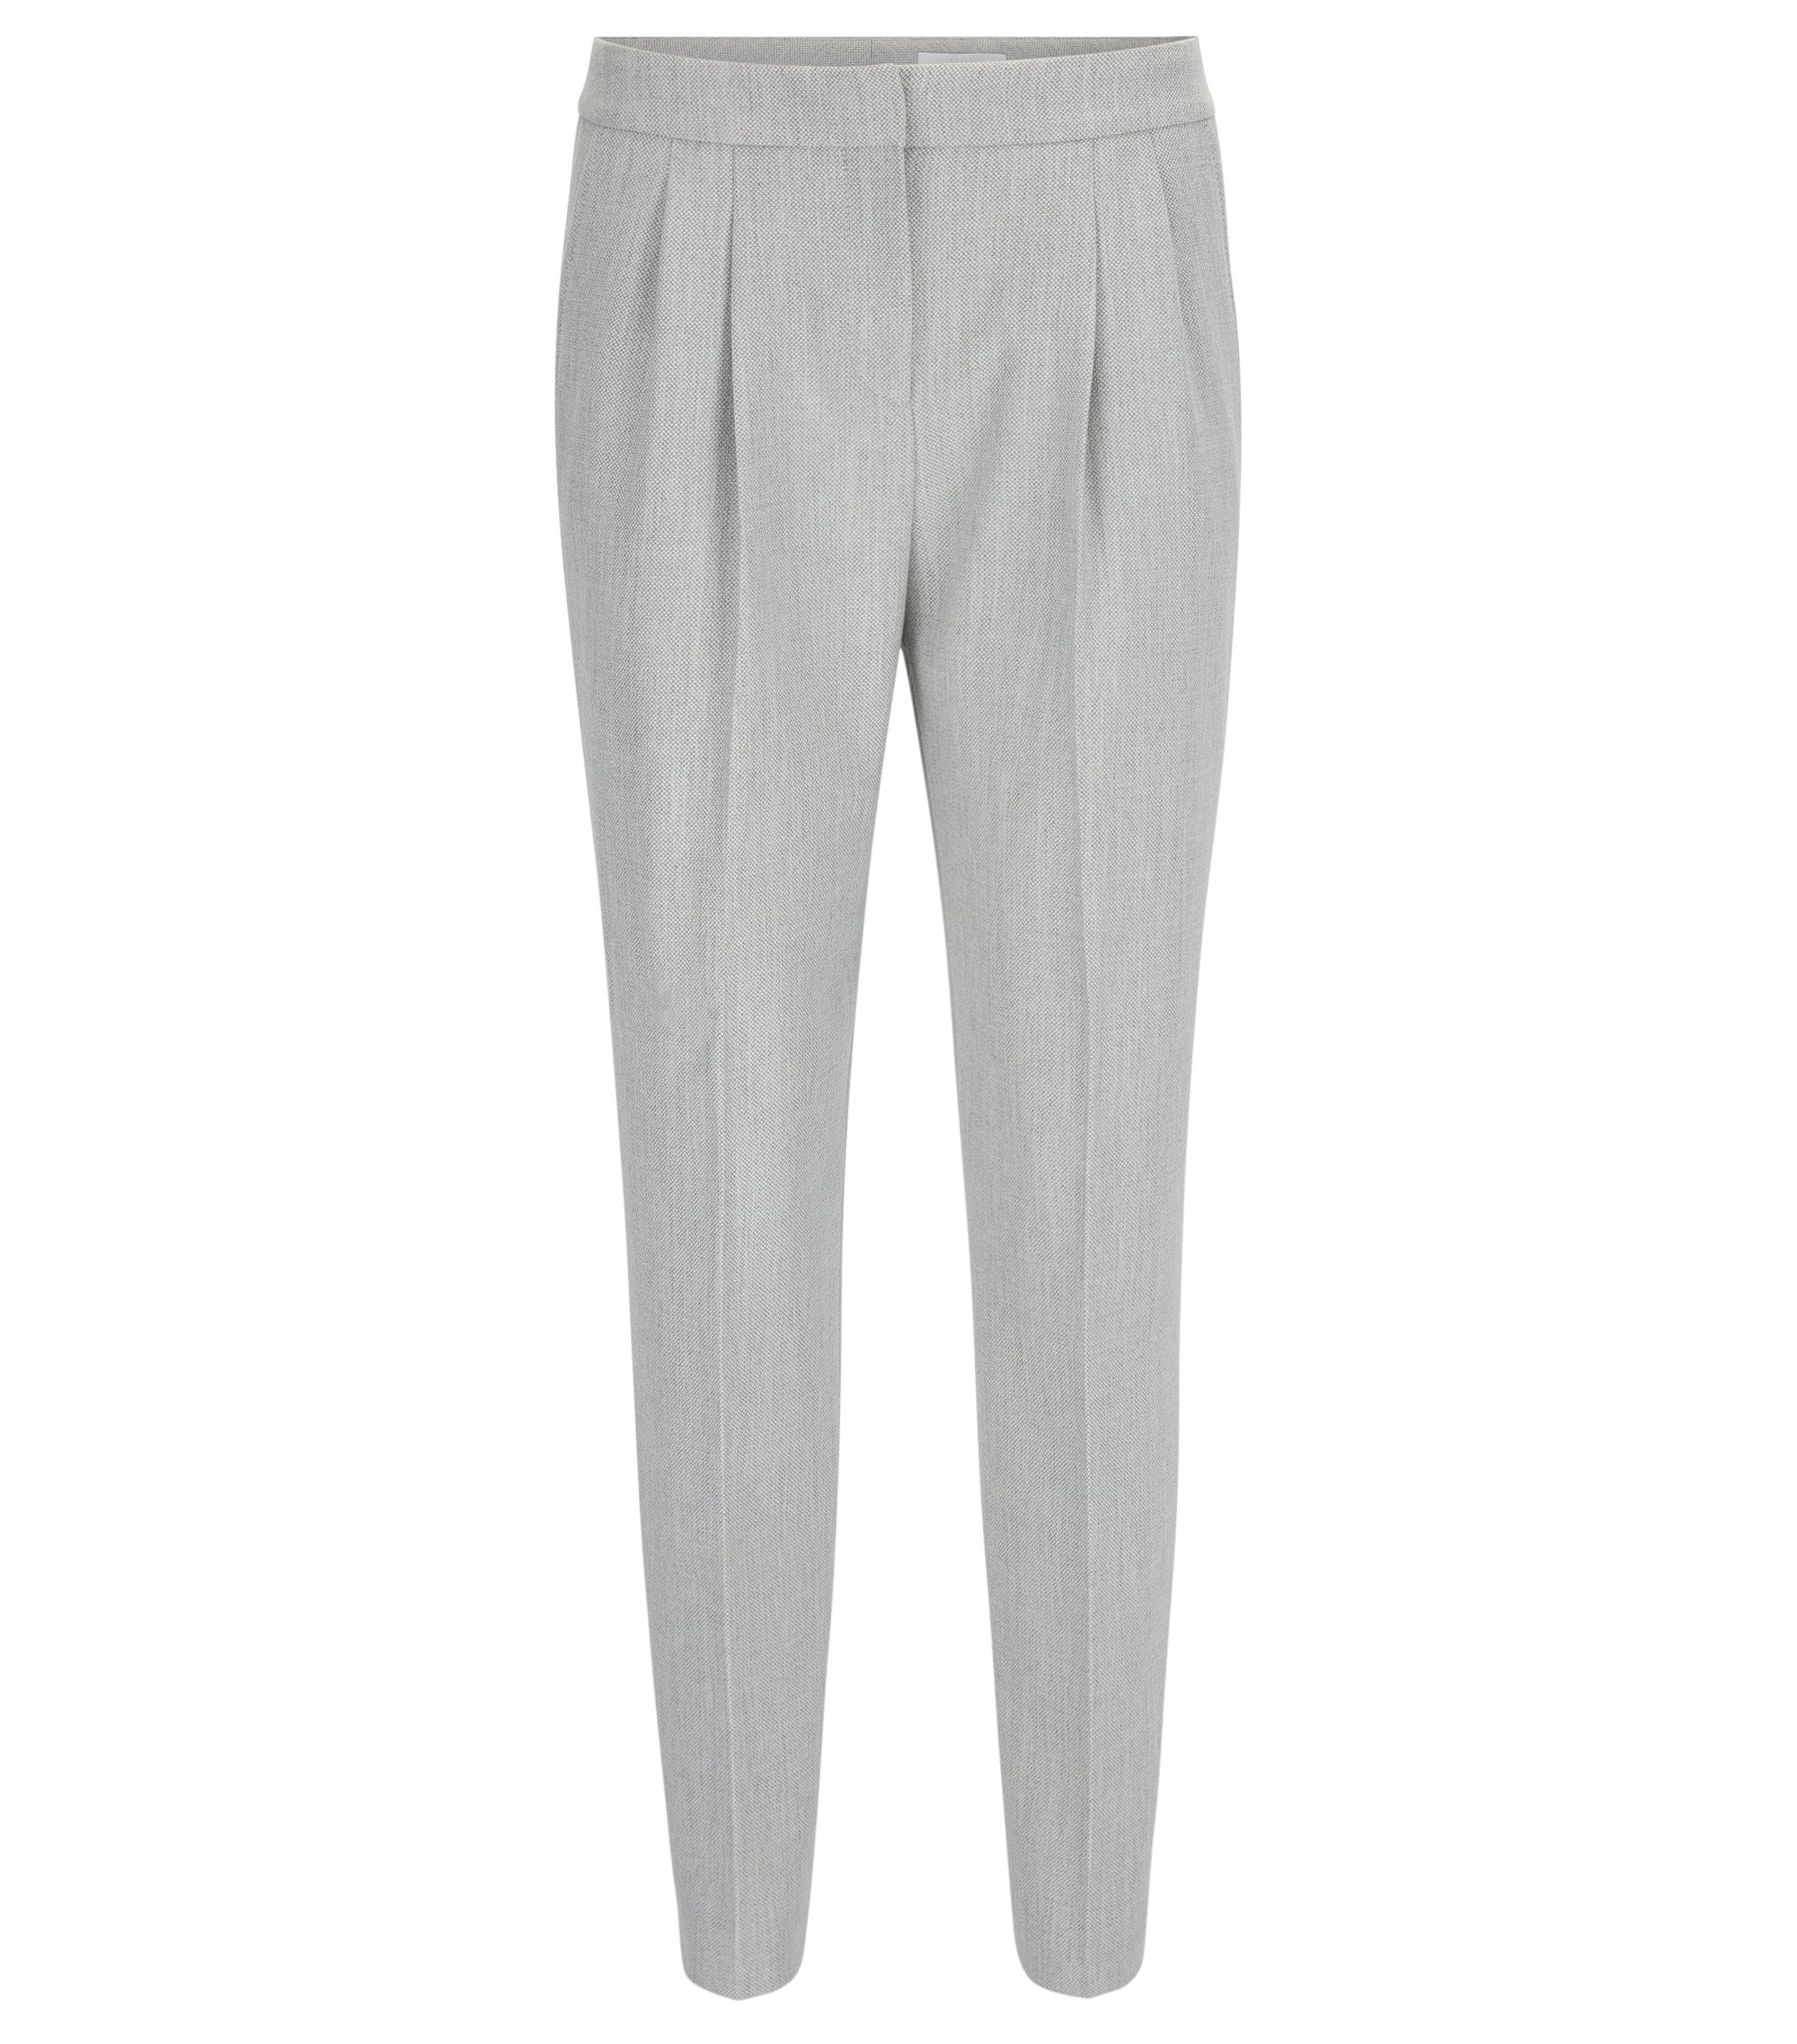 Stretch Crop Pant | Tisuena, Patterned